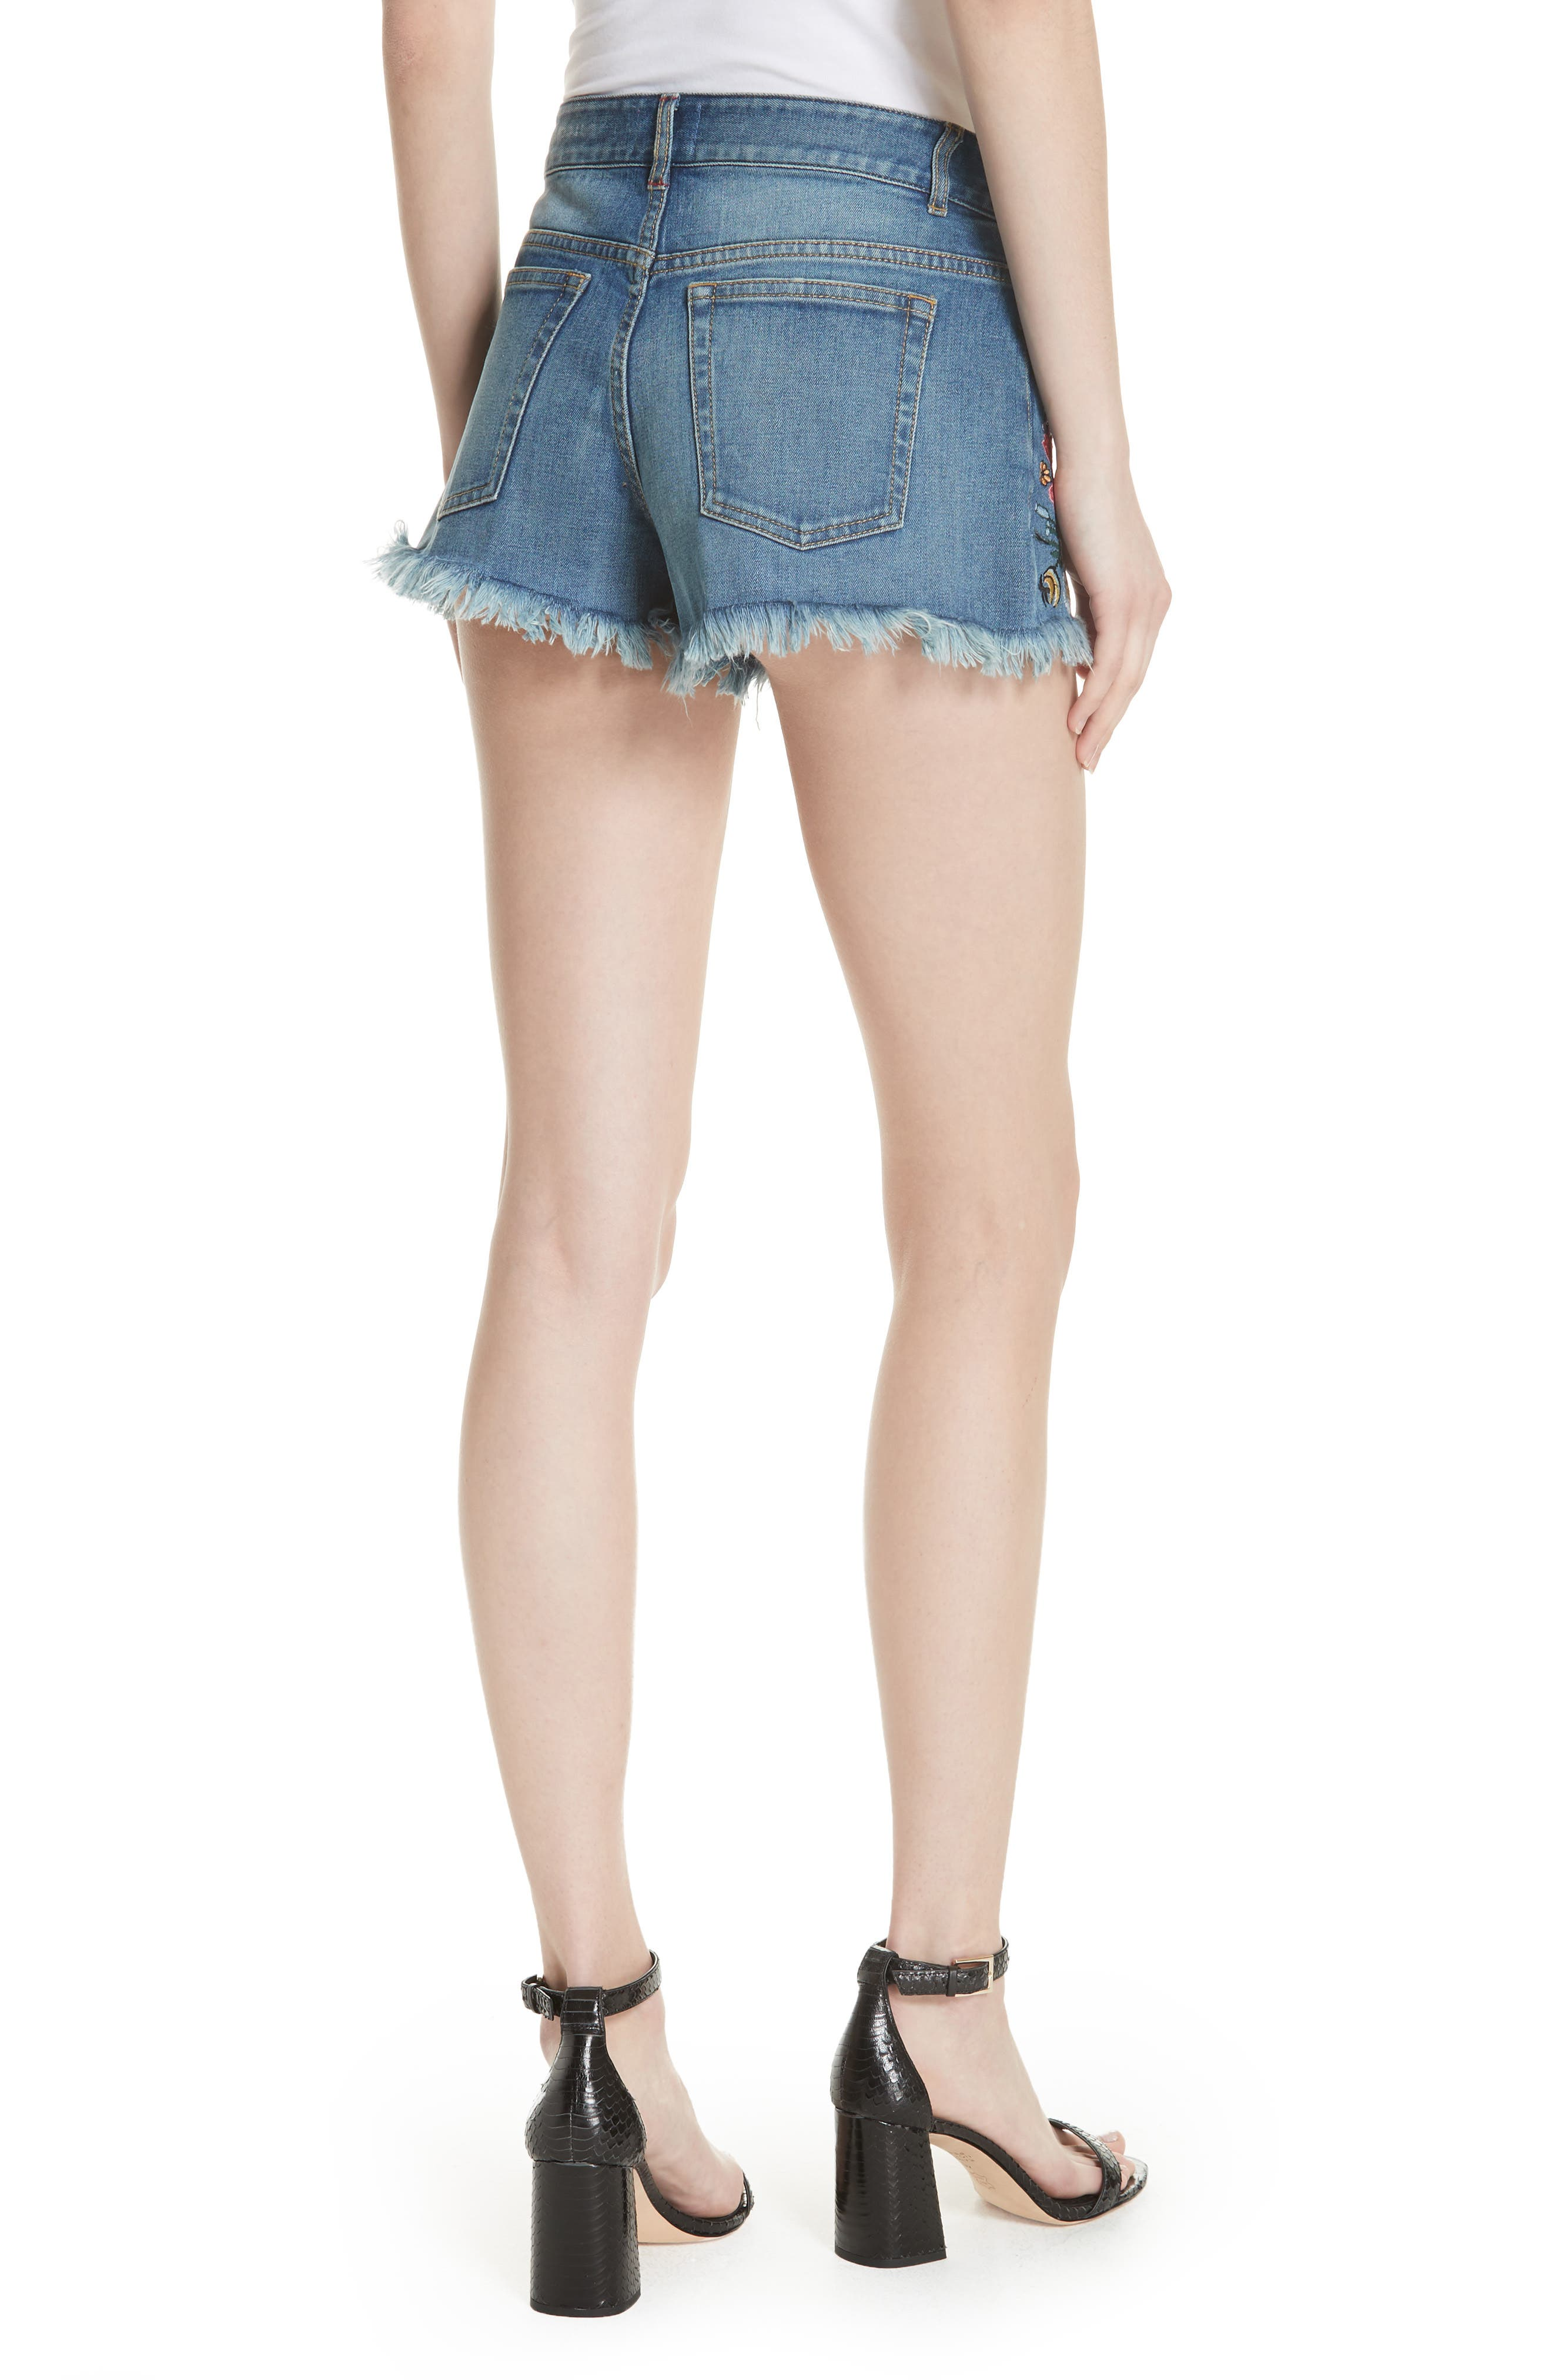 ALICE + OLIVIA JEANS,                             Embroidered Denim Shorts,                             Alternate thumbnail 2, color,                             460